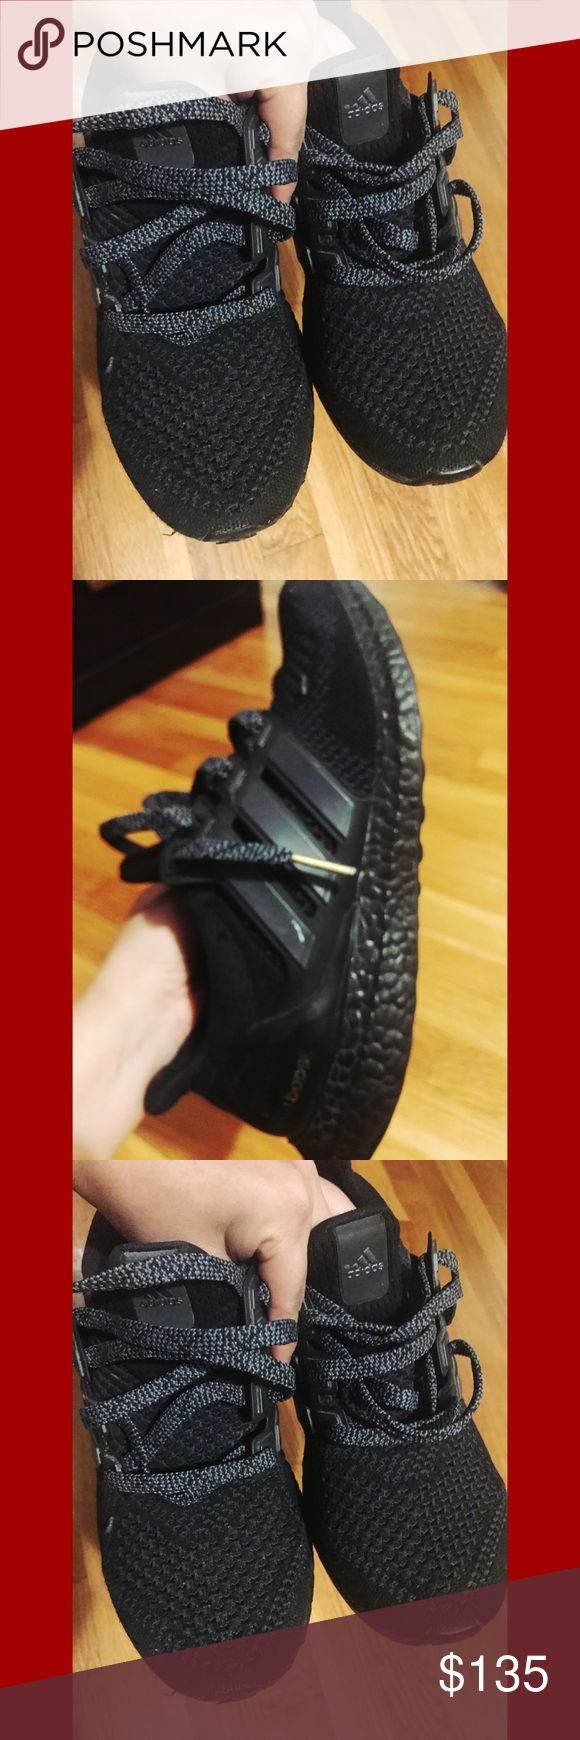 Adidas Ultra Boost Size 8.5 in excellent used condition. Black. ✨AUTHENTIC✨ price firm unless bundled, non lowball offers will be considered adidas Shoes Sneakers